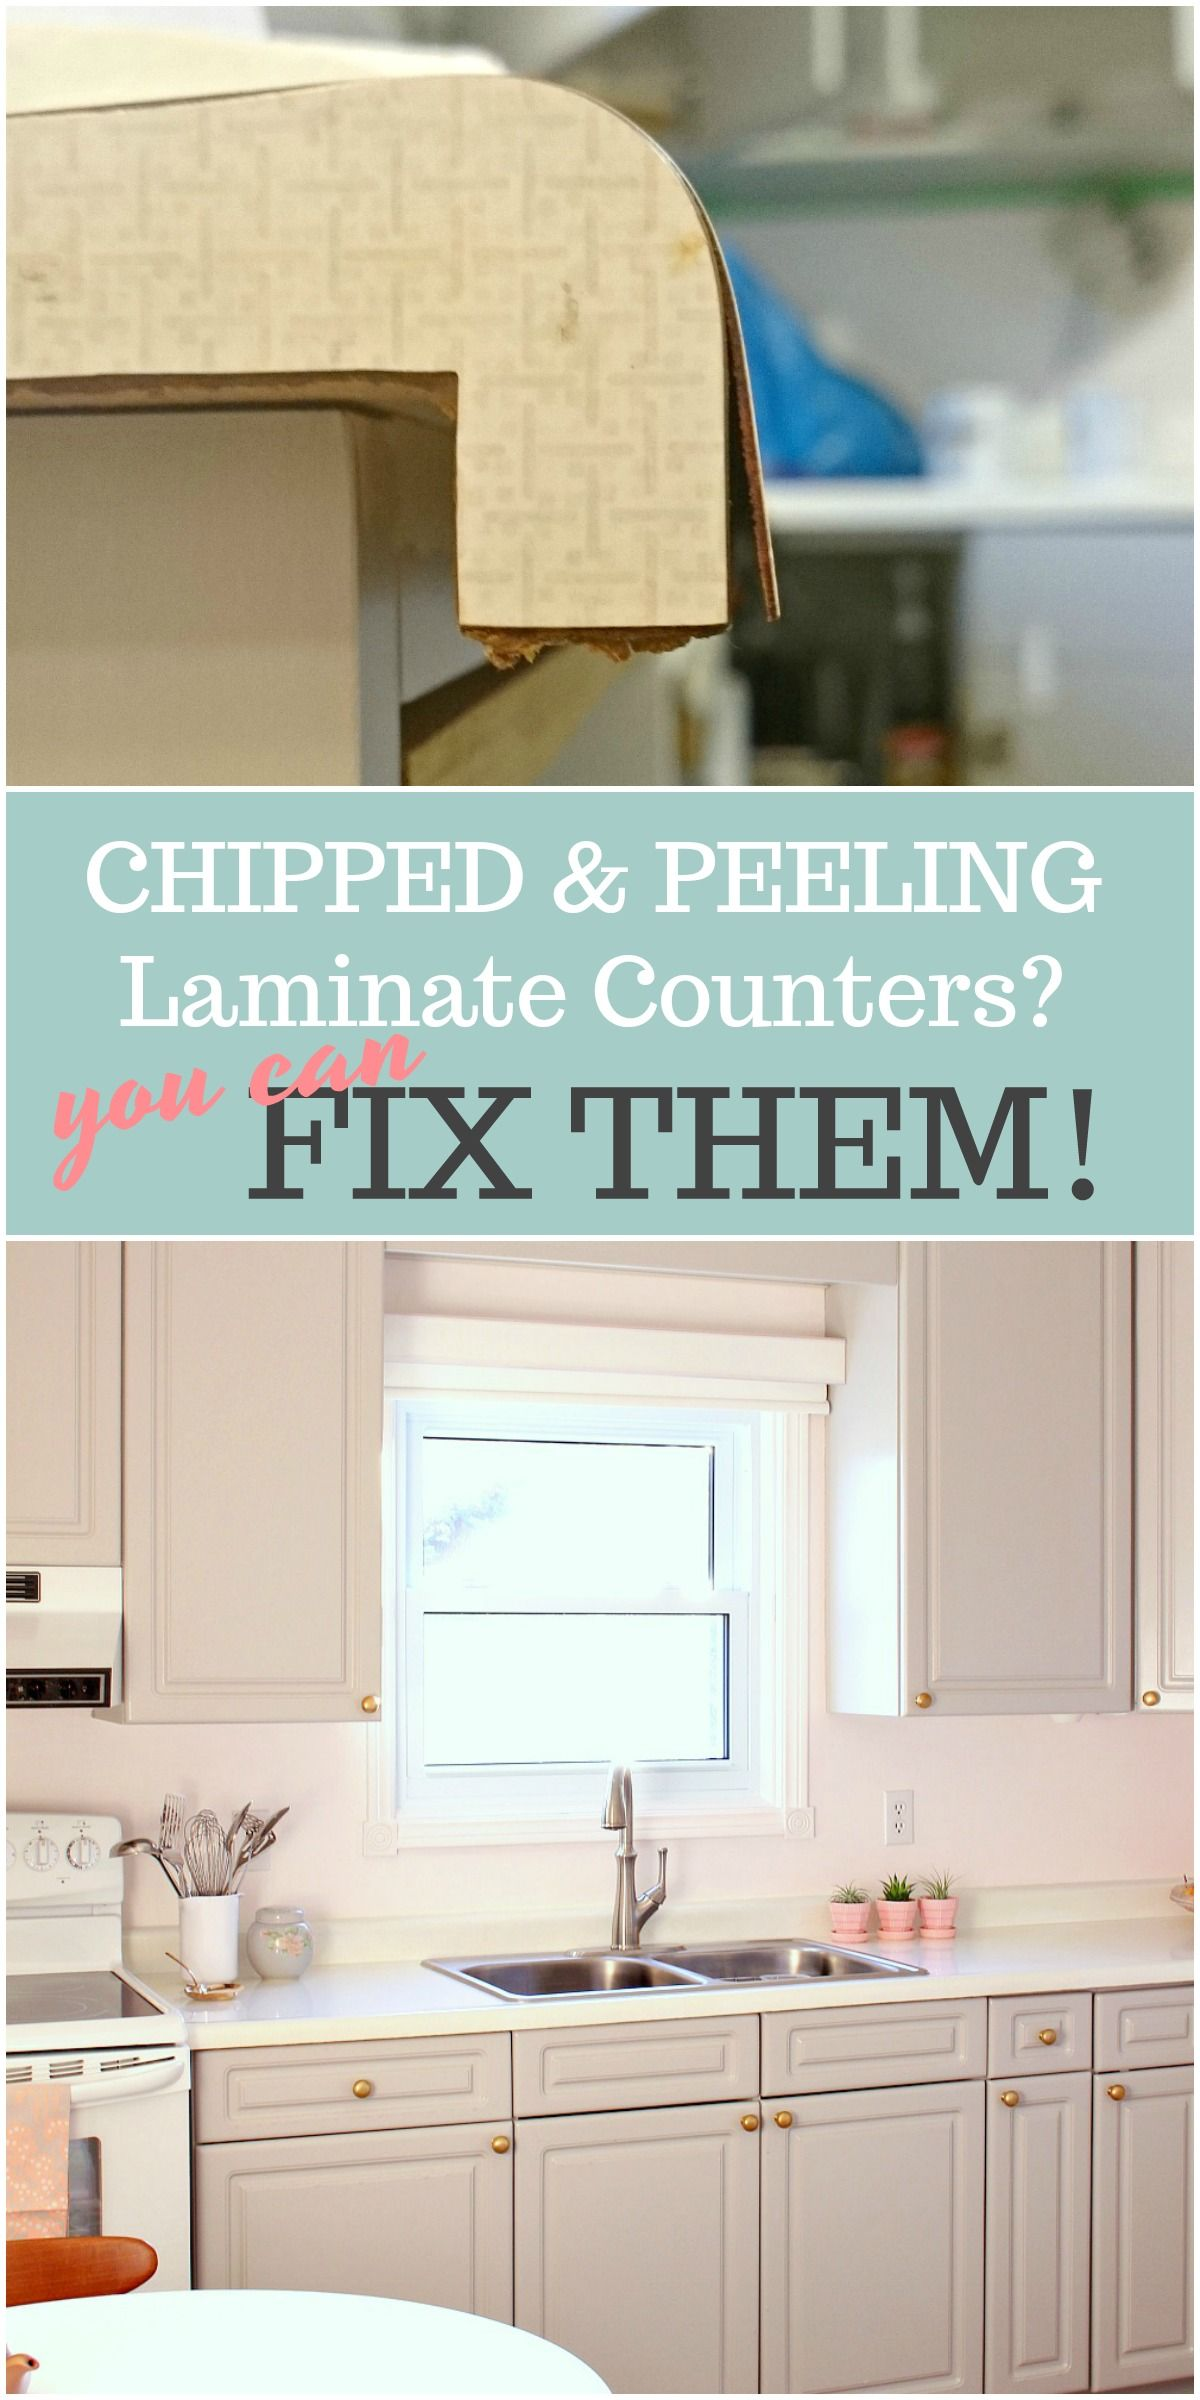 Do You Have Chipped And Ling Laminate Counters Repair Countertops This Weekend Learn How To Refinish With